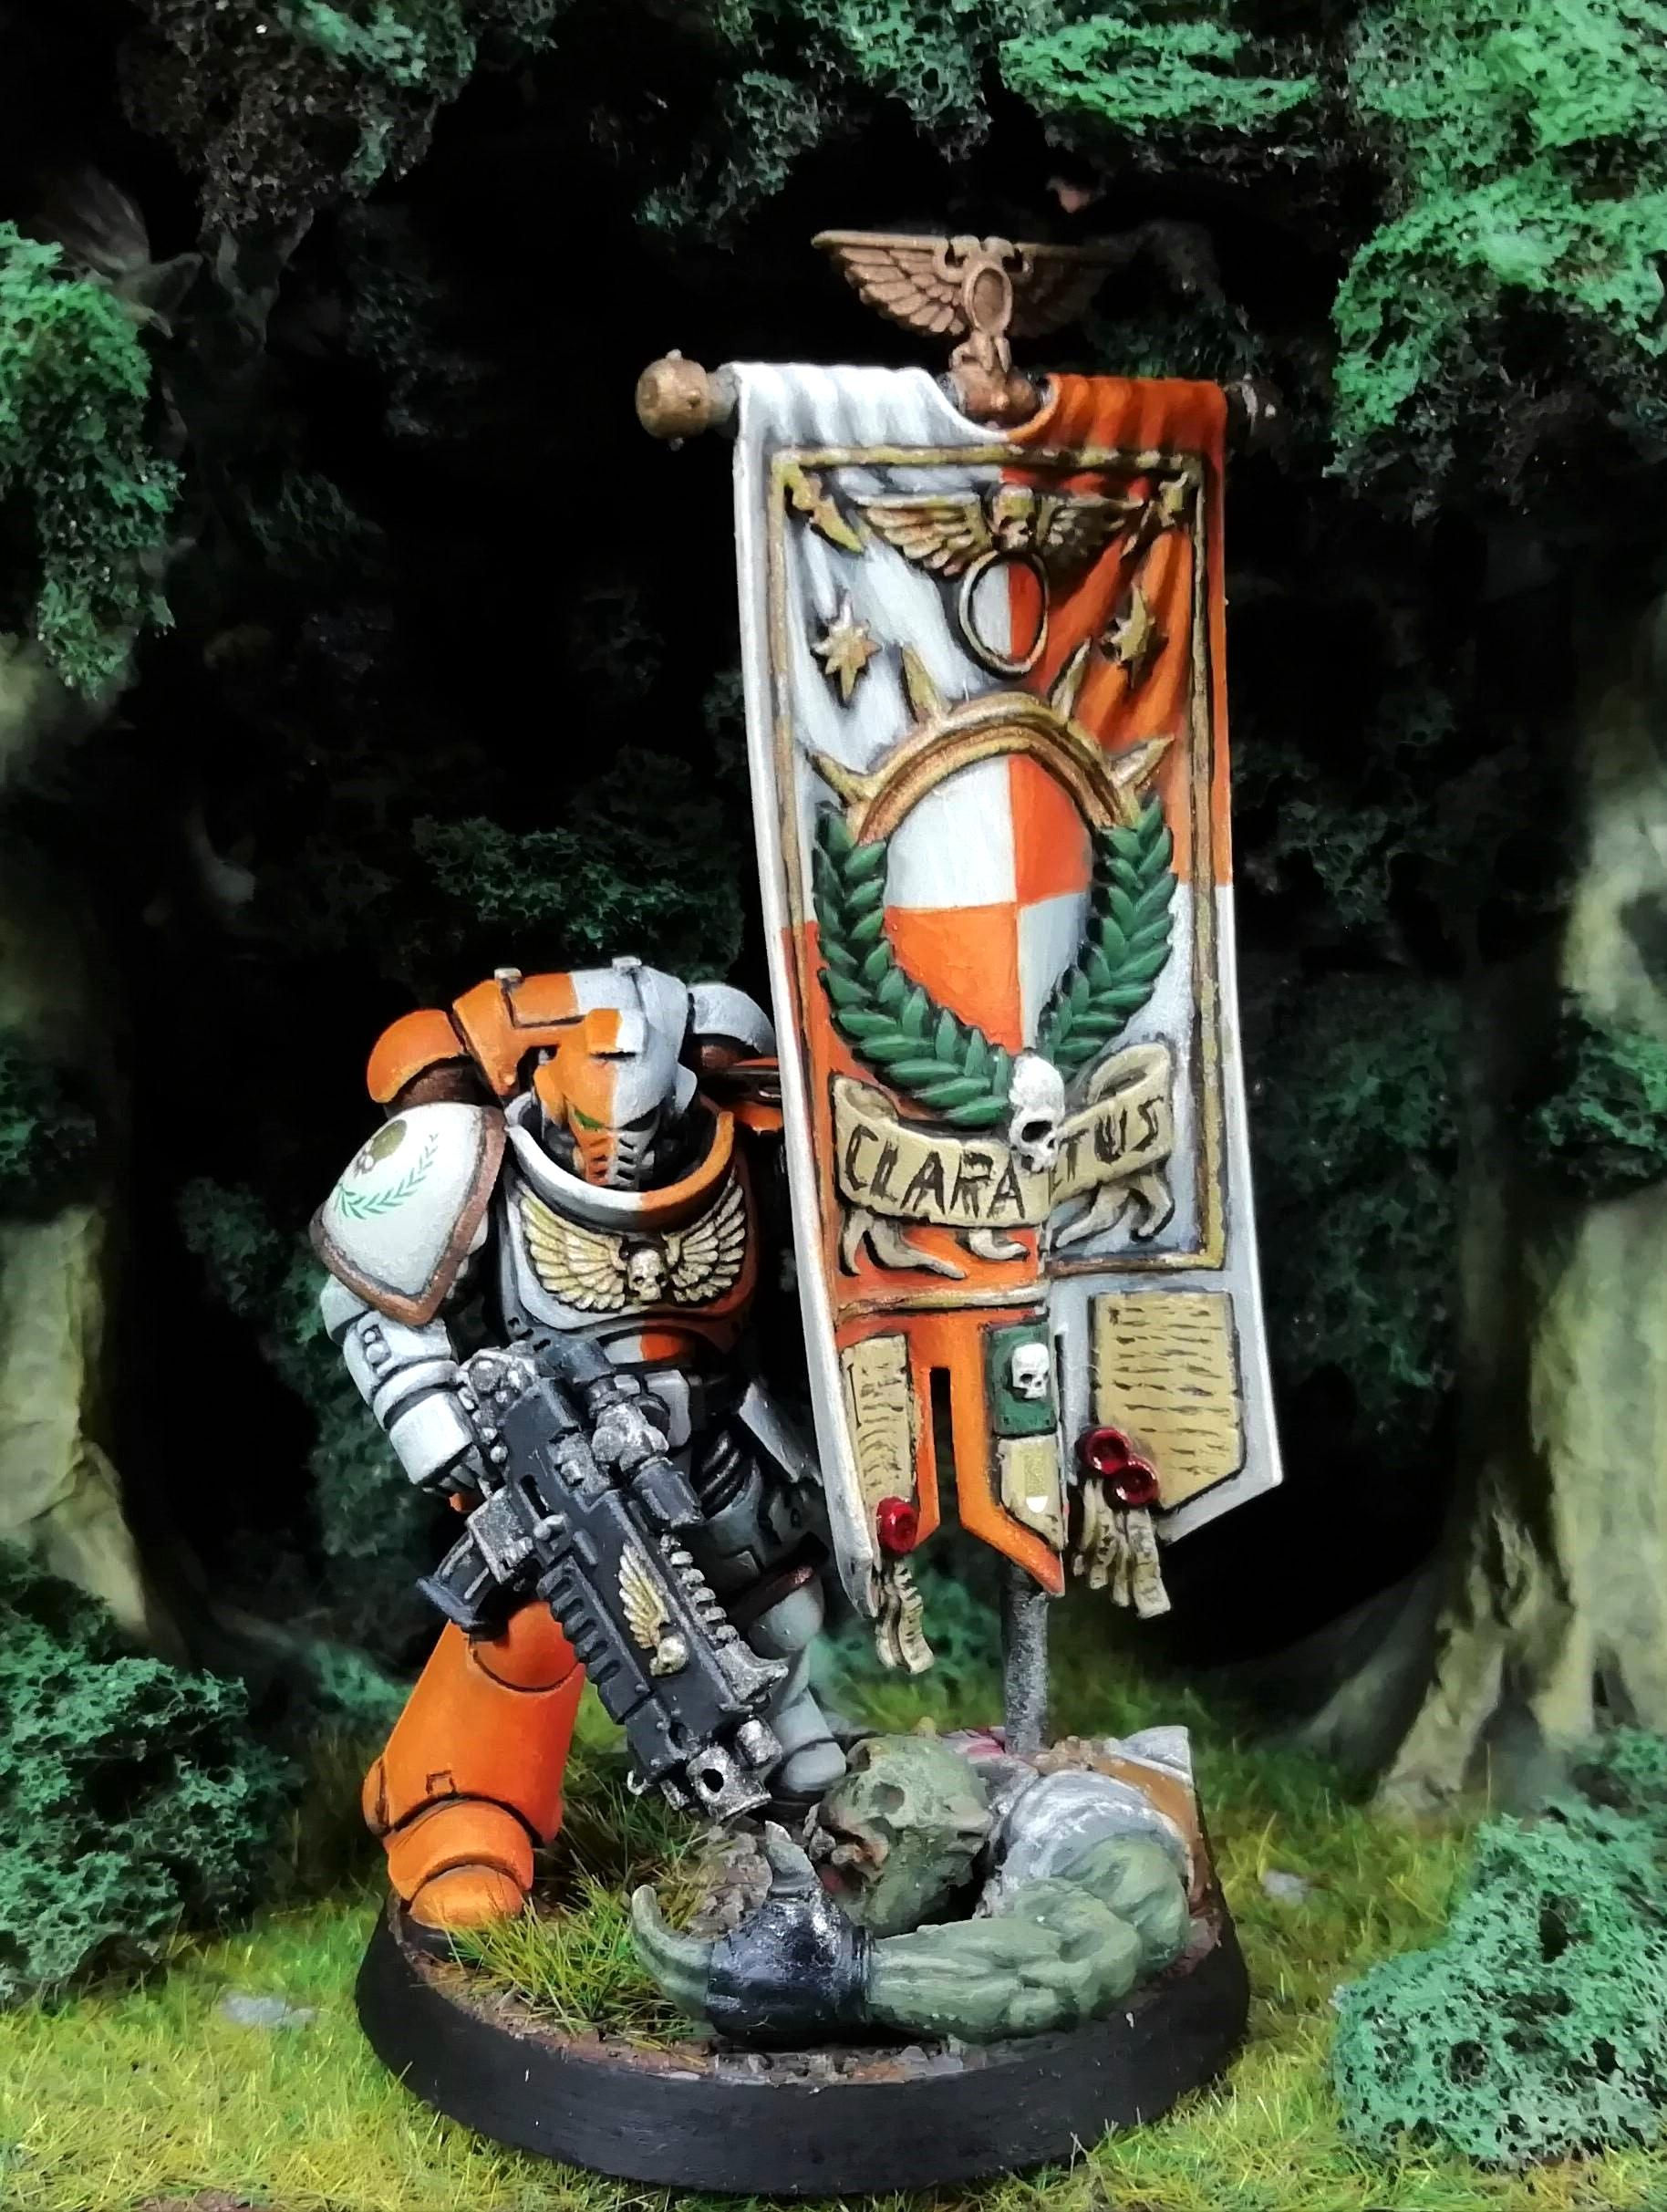 Space Marine Ancient, emerges